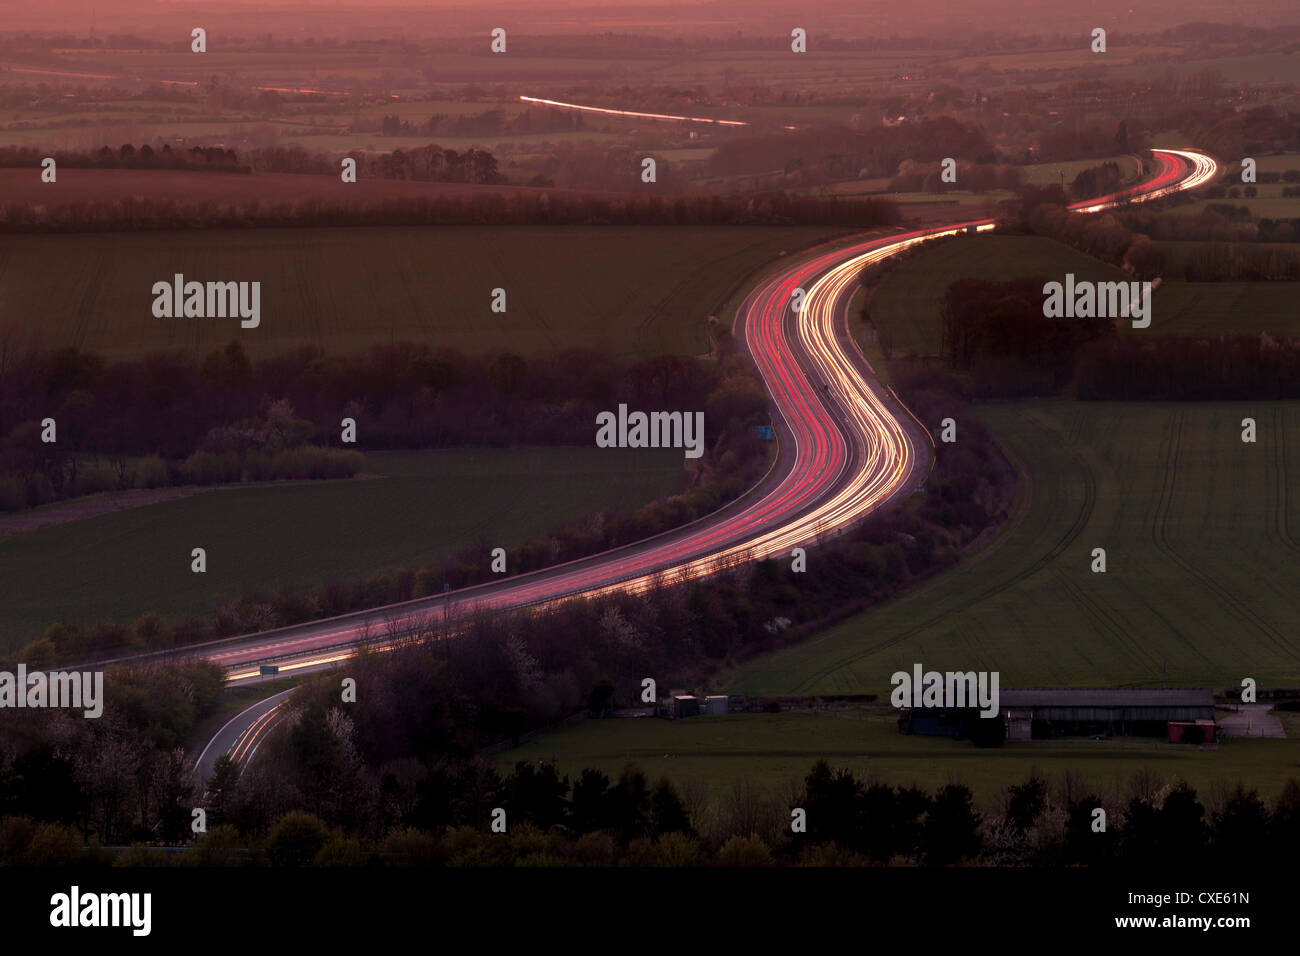 Telephoto aerial view of light trails at dusk on M40 motorway in The Chilterns, Oxfordshire, England, United Kingdom, - Stock Image